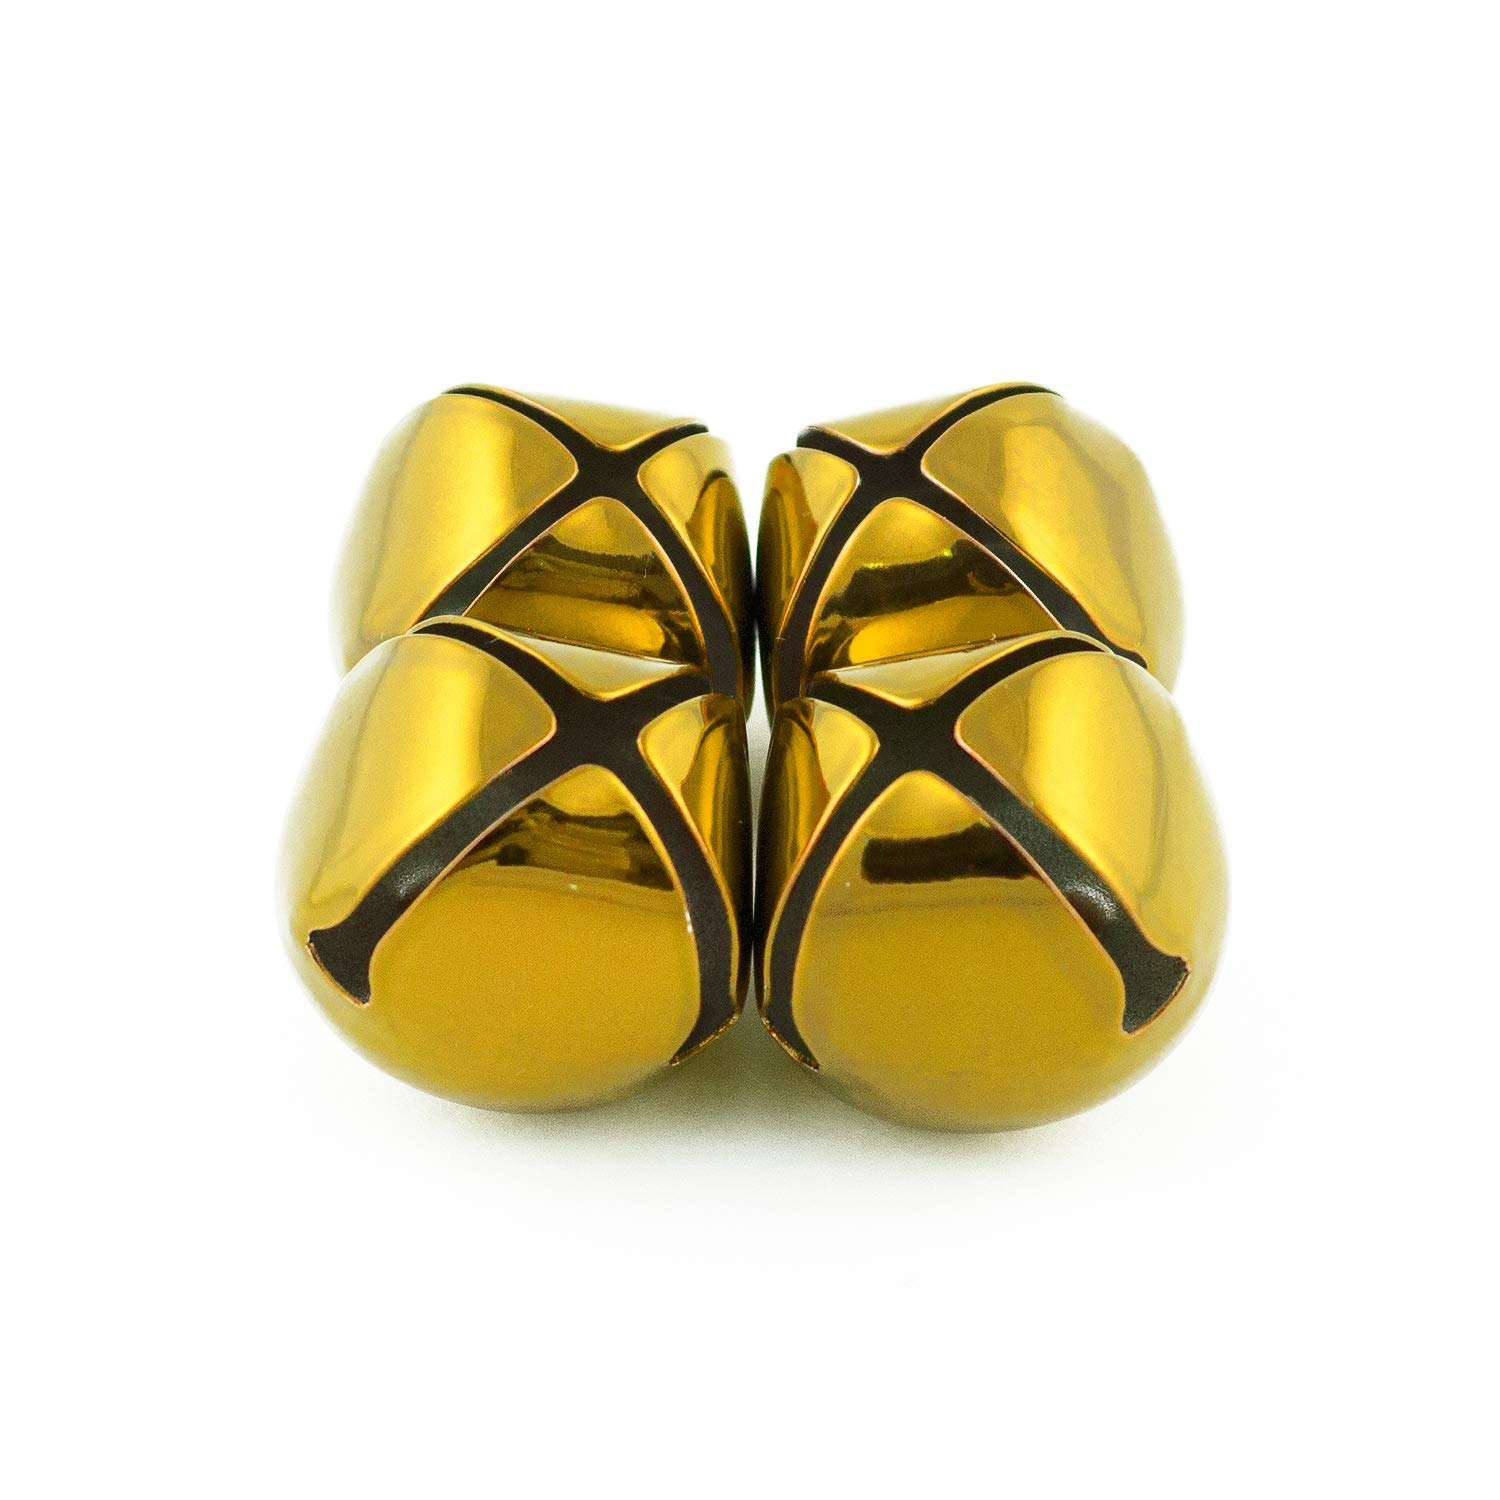 1.25 inch 30mm Large Gold Jingle Bells Bulk 100 Pieces by Art Cove (Image #4)